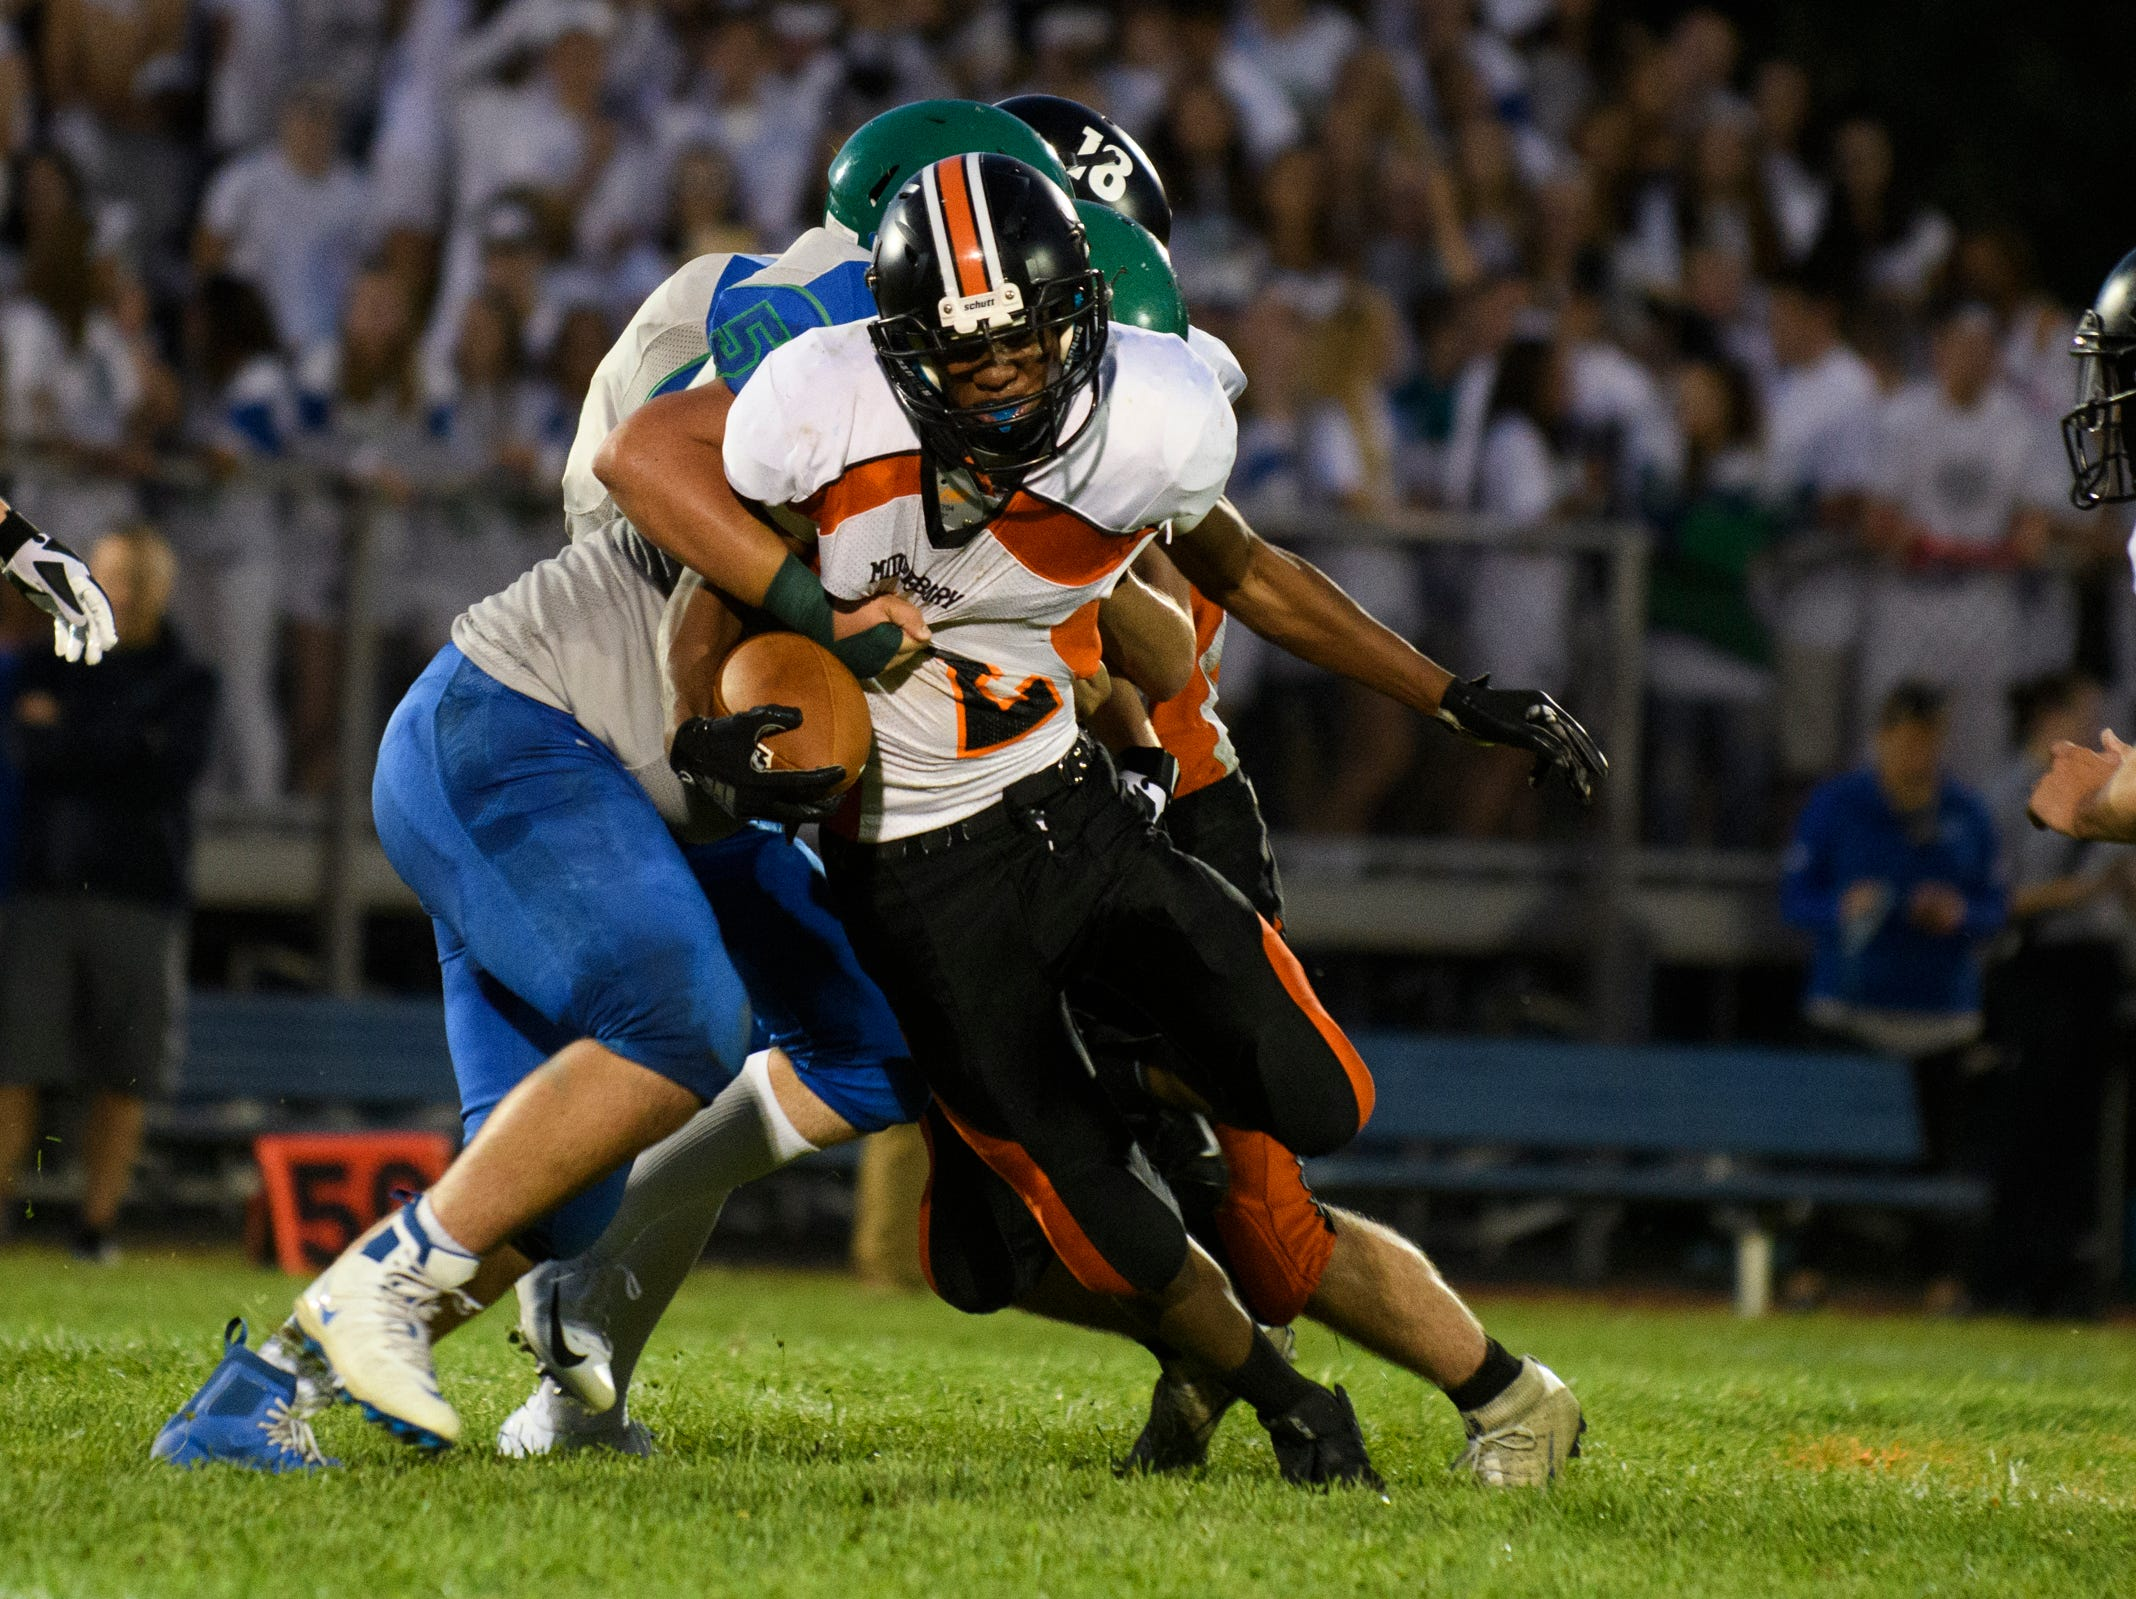 Middlebury's CJ Bryant (2) runs with the football during the boys high school football game between Middlebury and Colchester at Colchester high school on Friday night August 31, 2018 in Colchester.